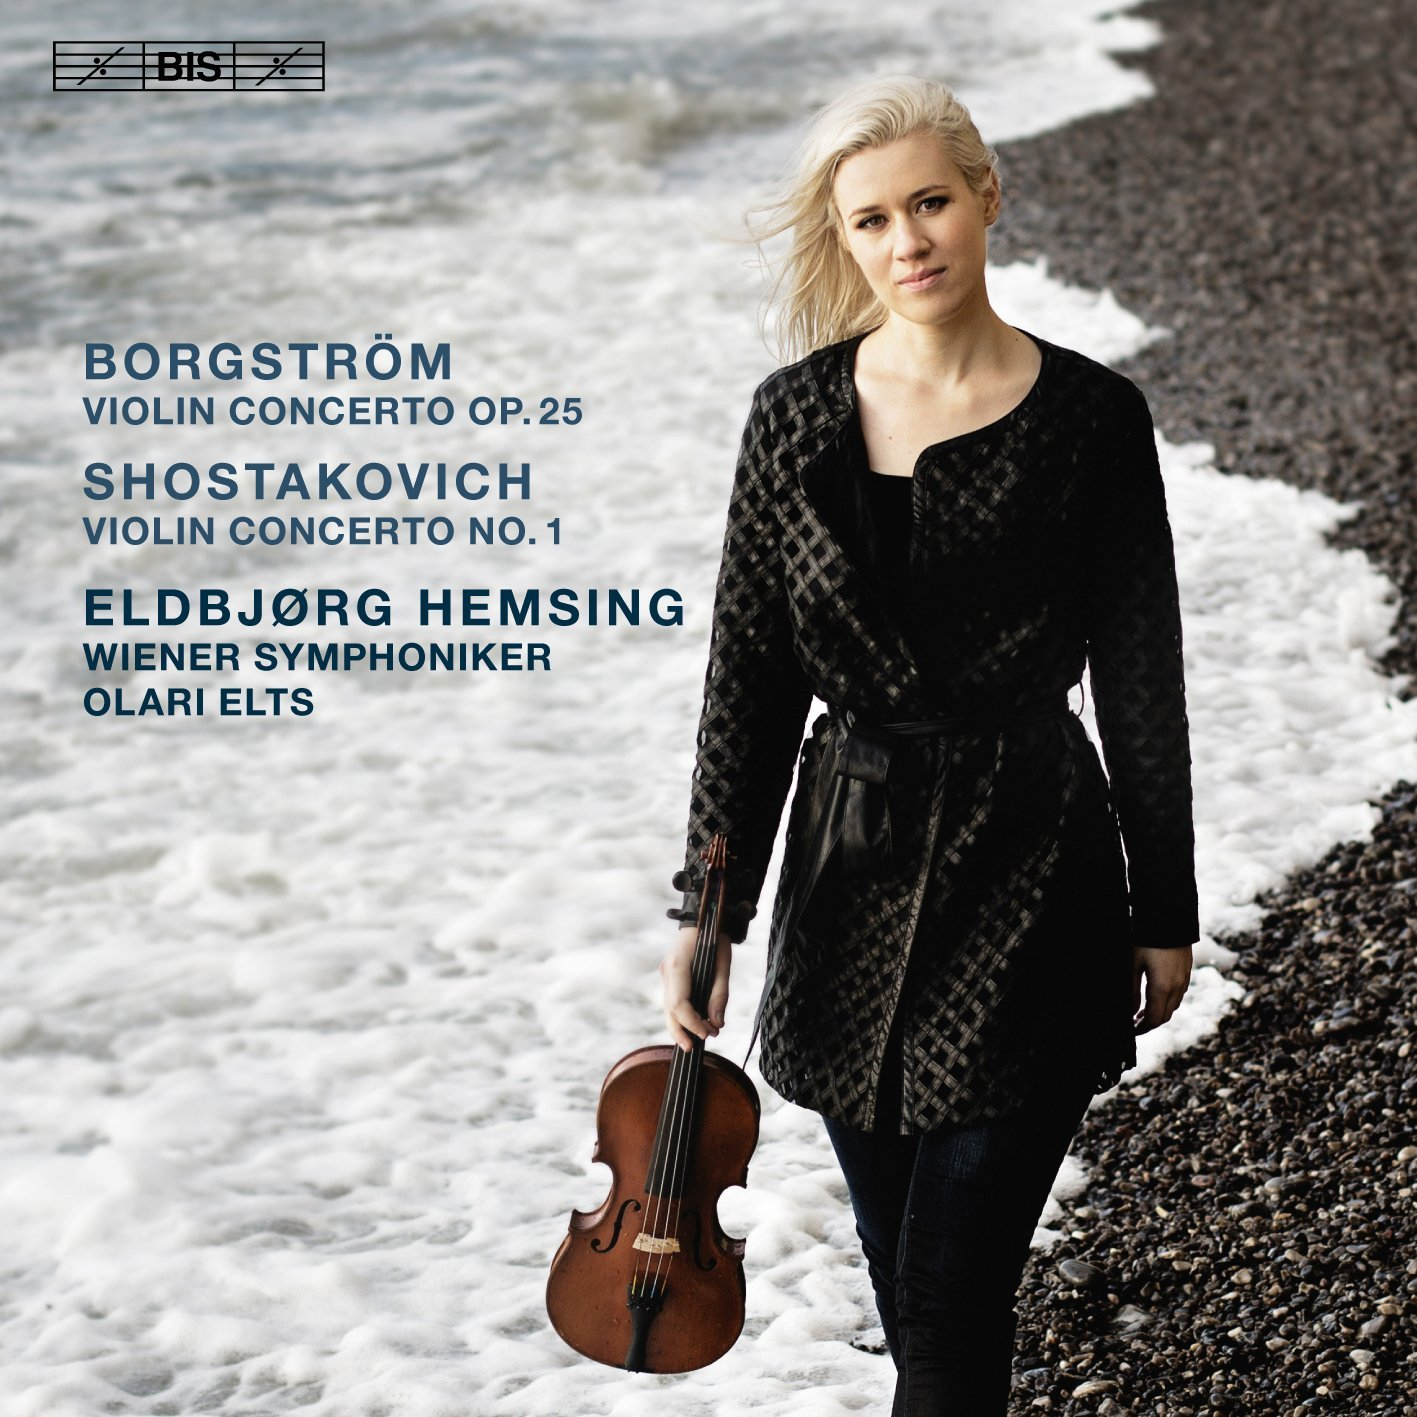 Borgstrom and Shostakovich